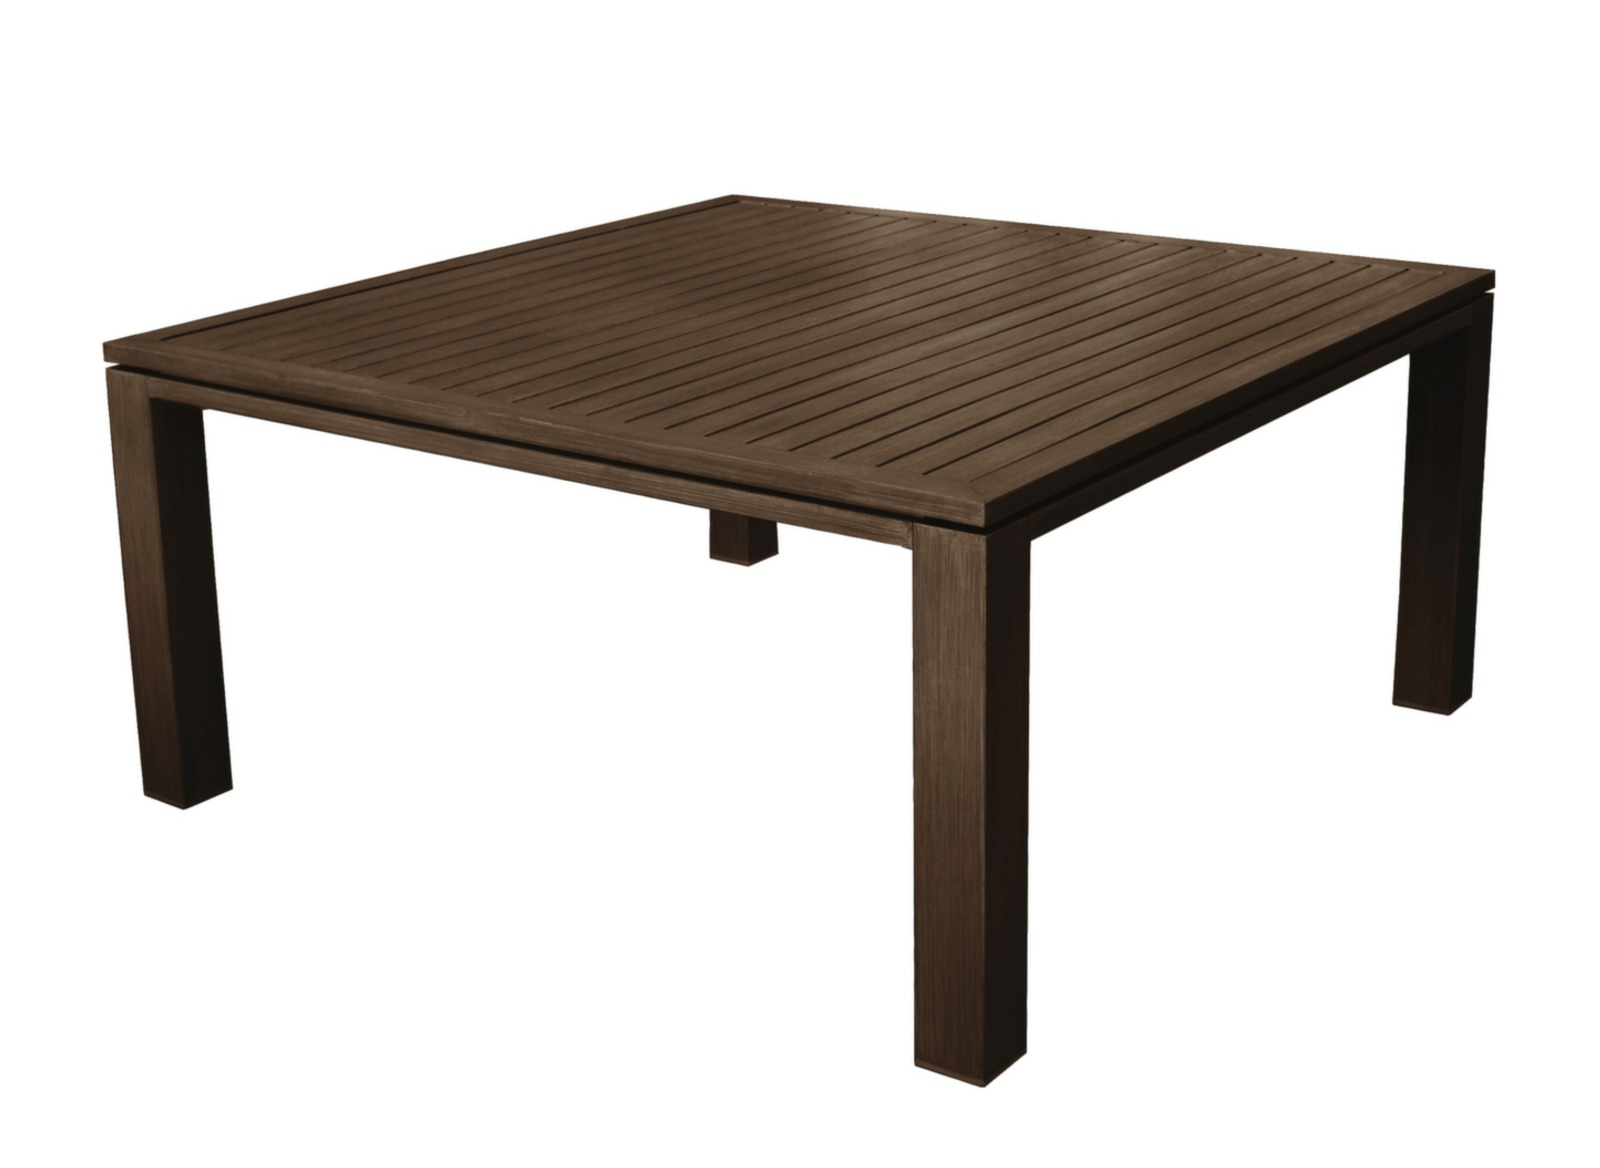 Table de jardin design carr e fiero 160cm proloisirs for Table jardin design